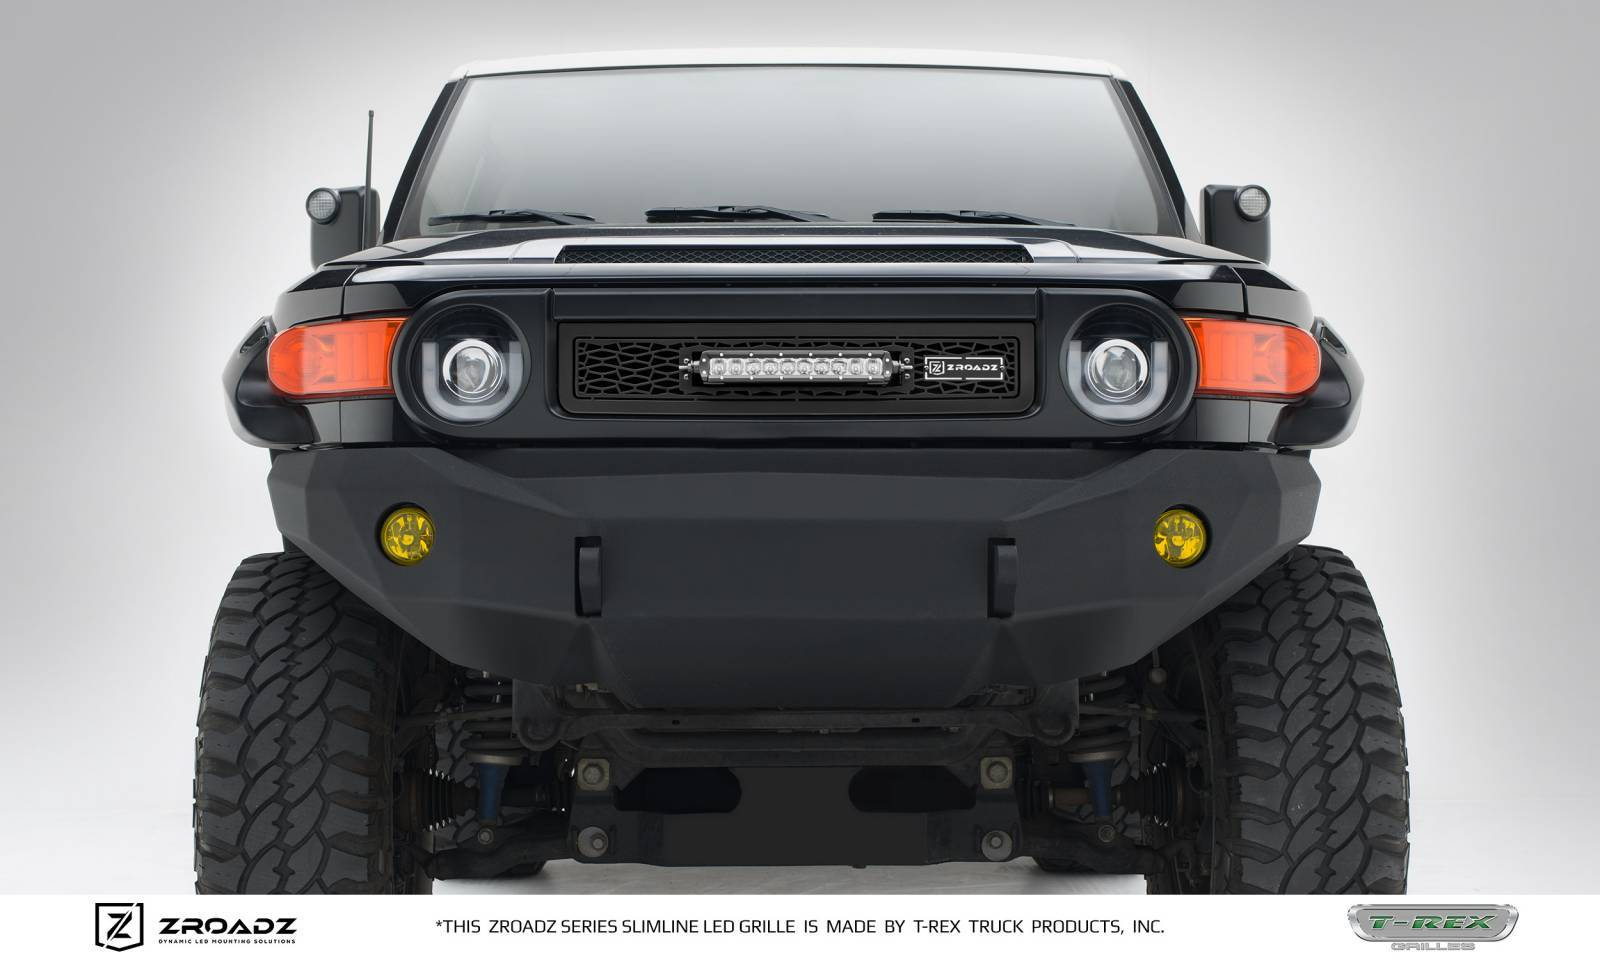 Toyota FJ Cruiser - ZROADZ Series - Main Insert - Grille w/ One 10 Inch Slim Line Single Row LED Light Bar - Includes Universal Wiring Harness - Part# Z319321